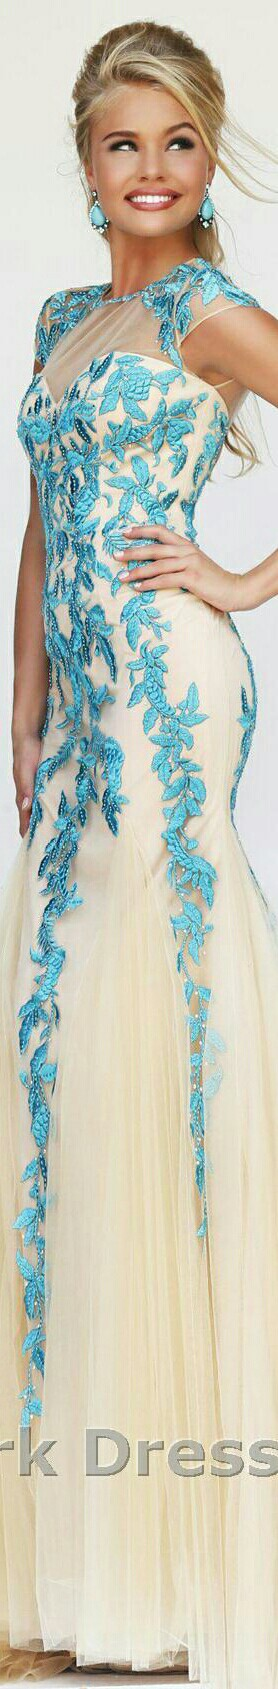 Sherri Hill 1927 Style Dress In Turquoise